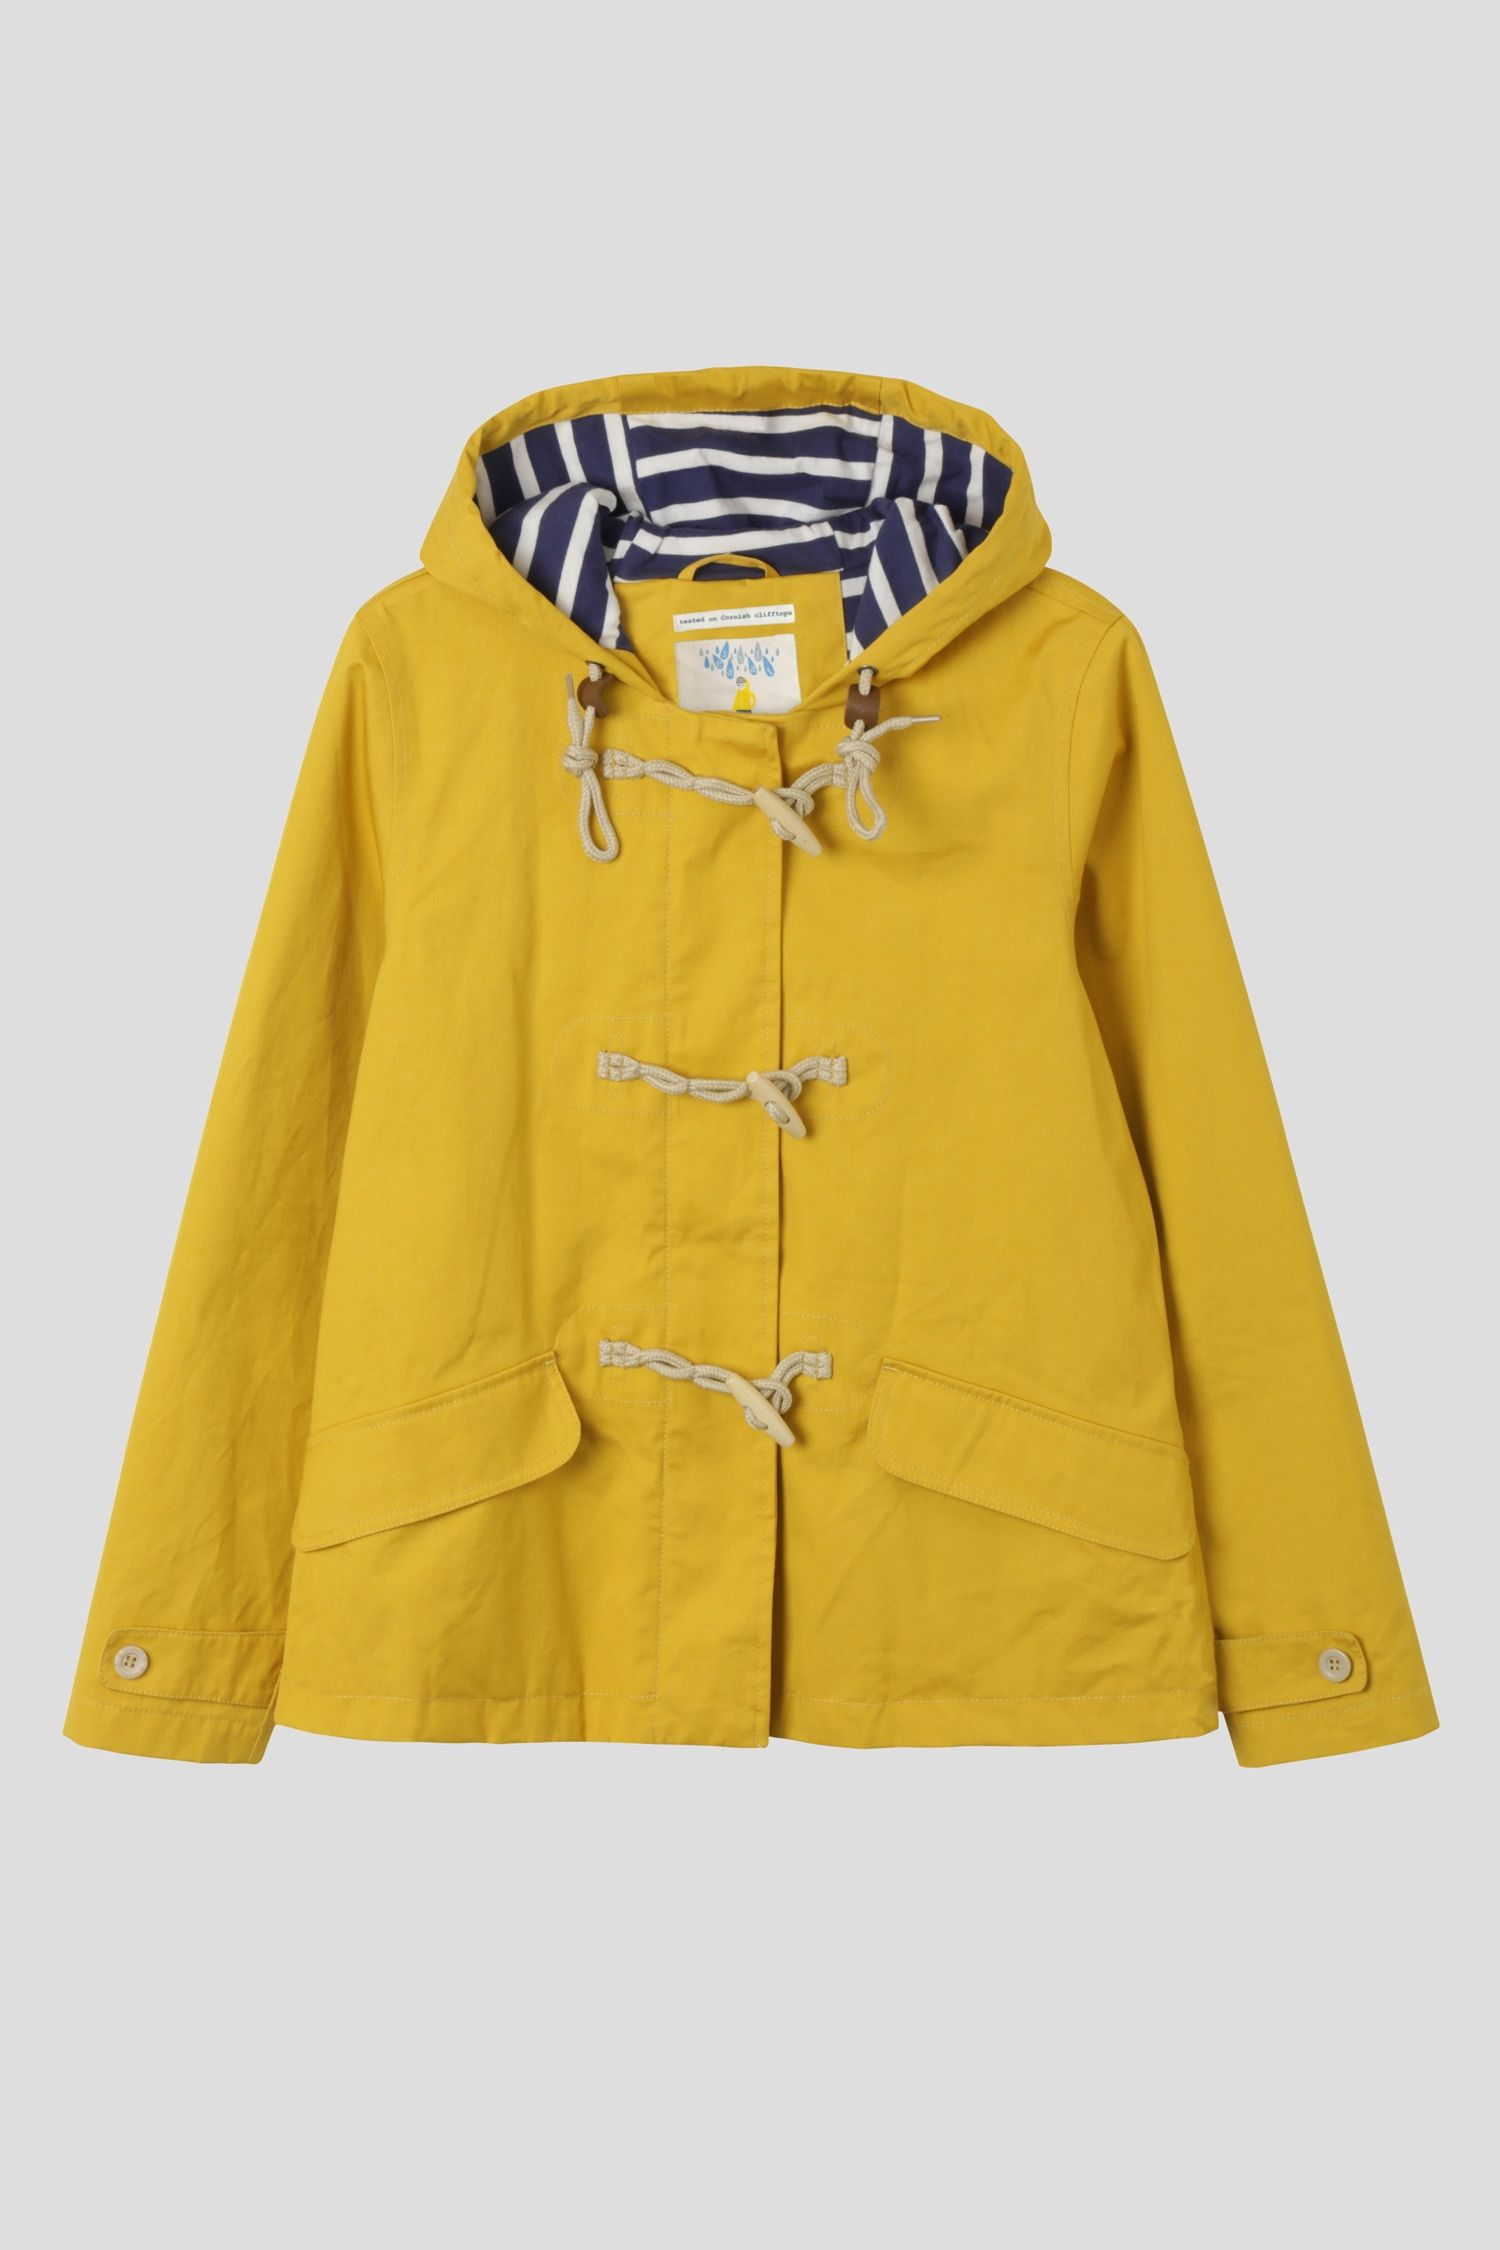 Classic nautical styling for rainy days.